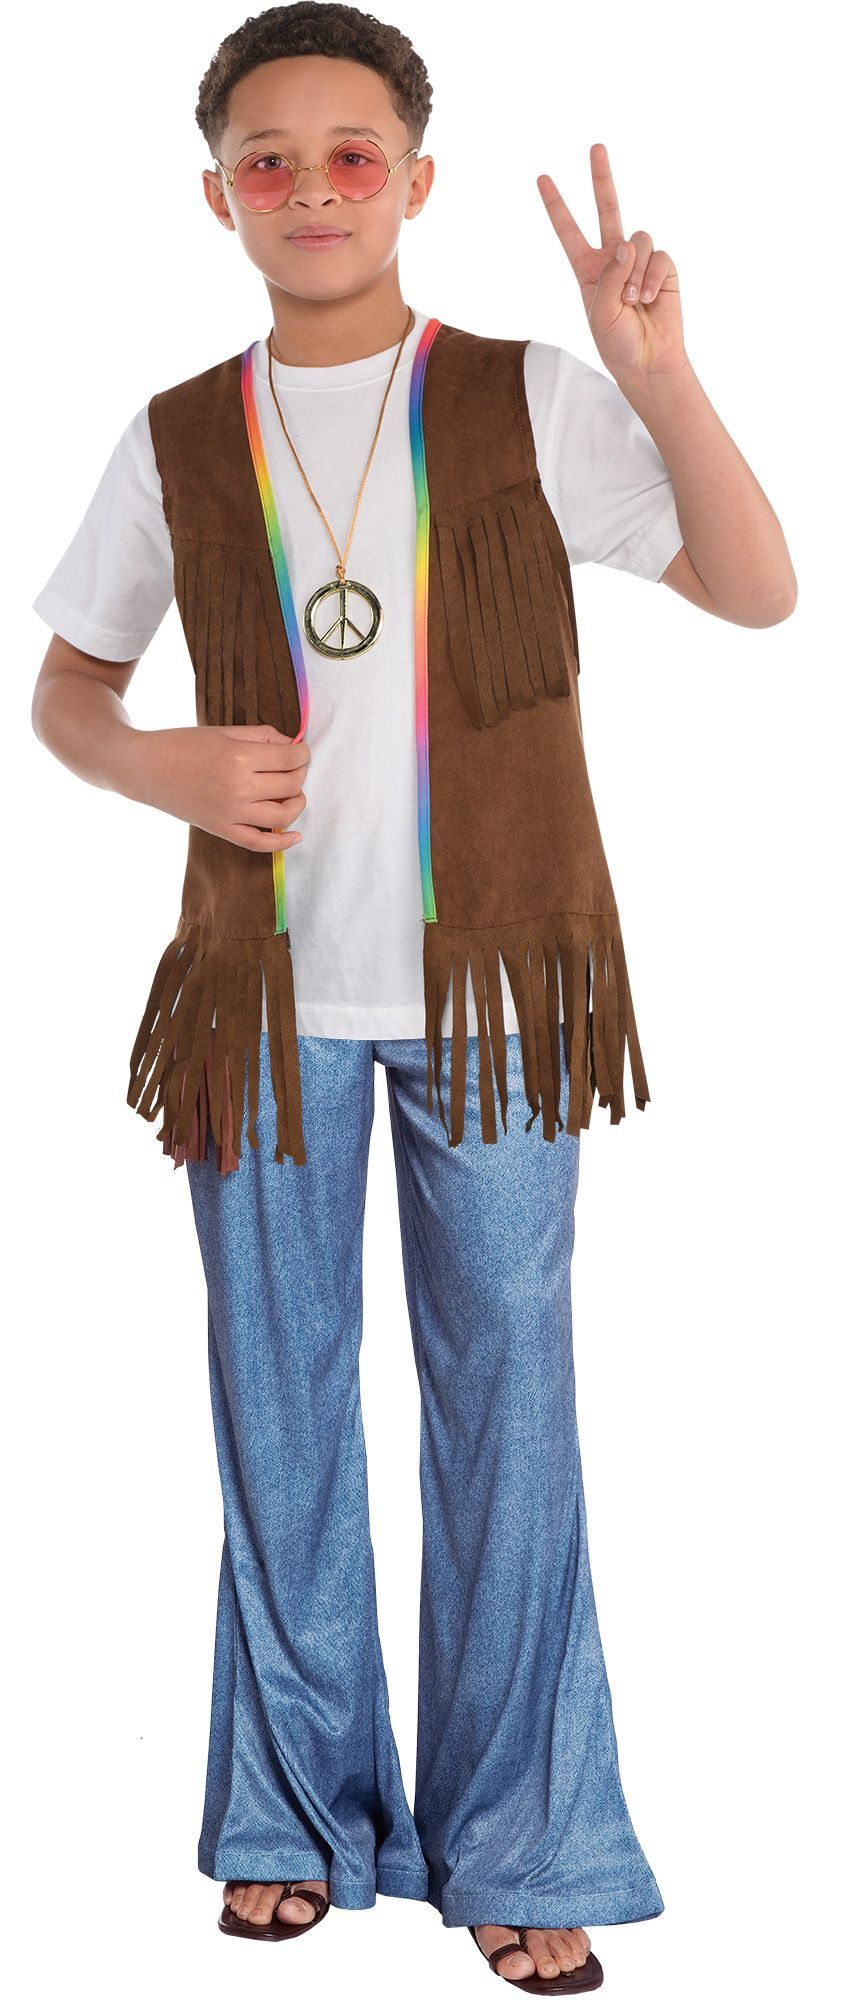 Christmas gown ideas 70s halloween - Diy Hippie Costume